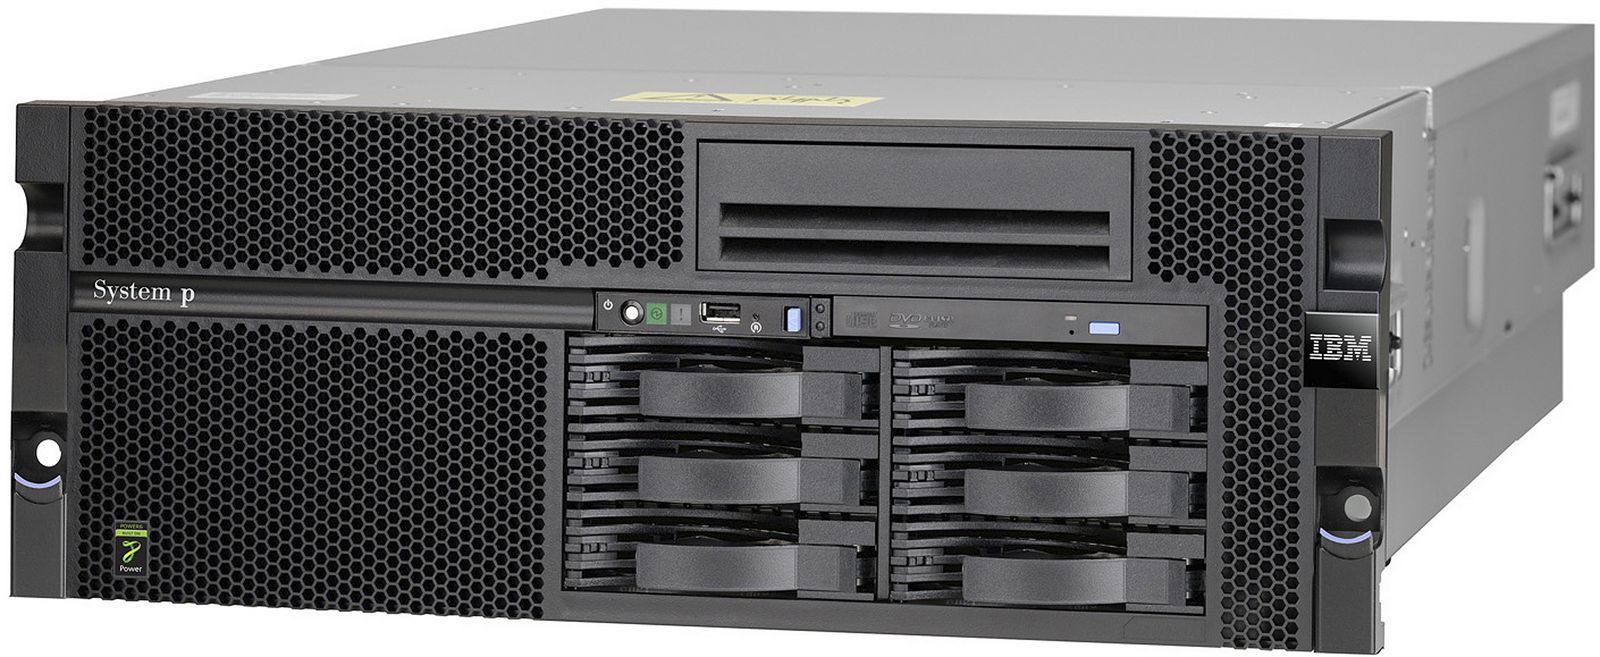 IBM P6 520 IBM P6 520 POWER6 pSeries Server